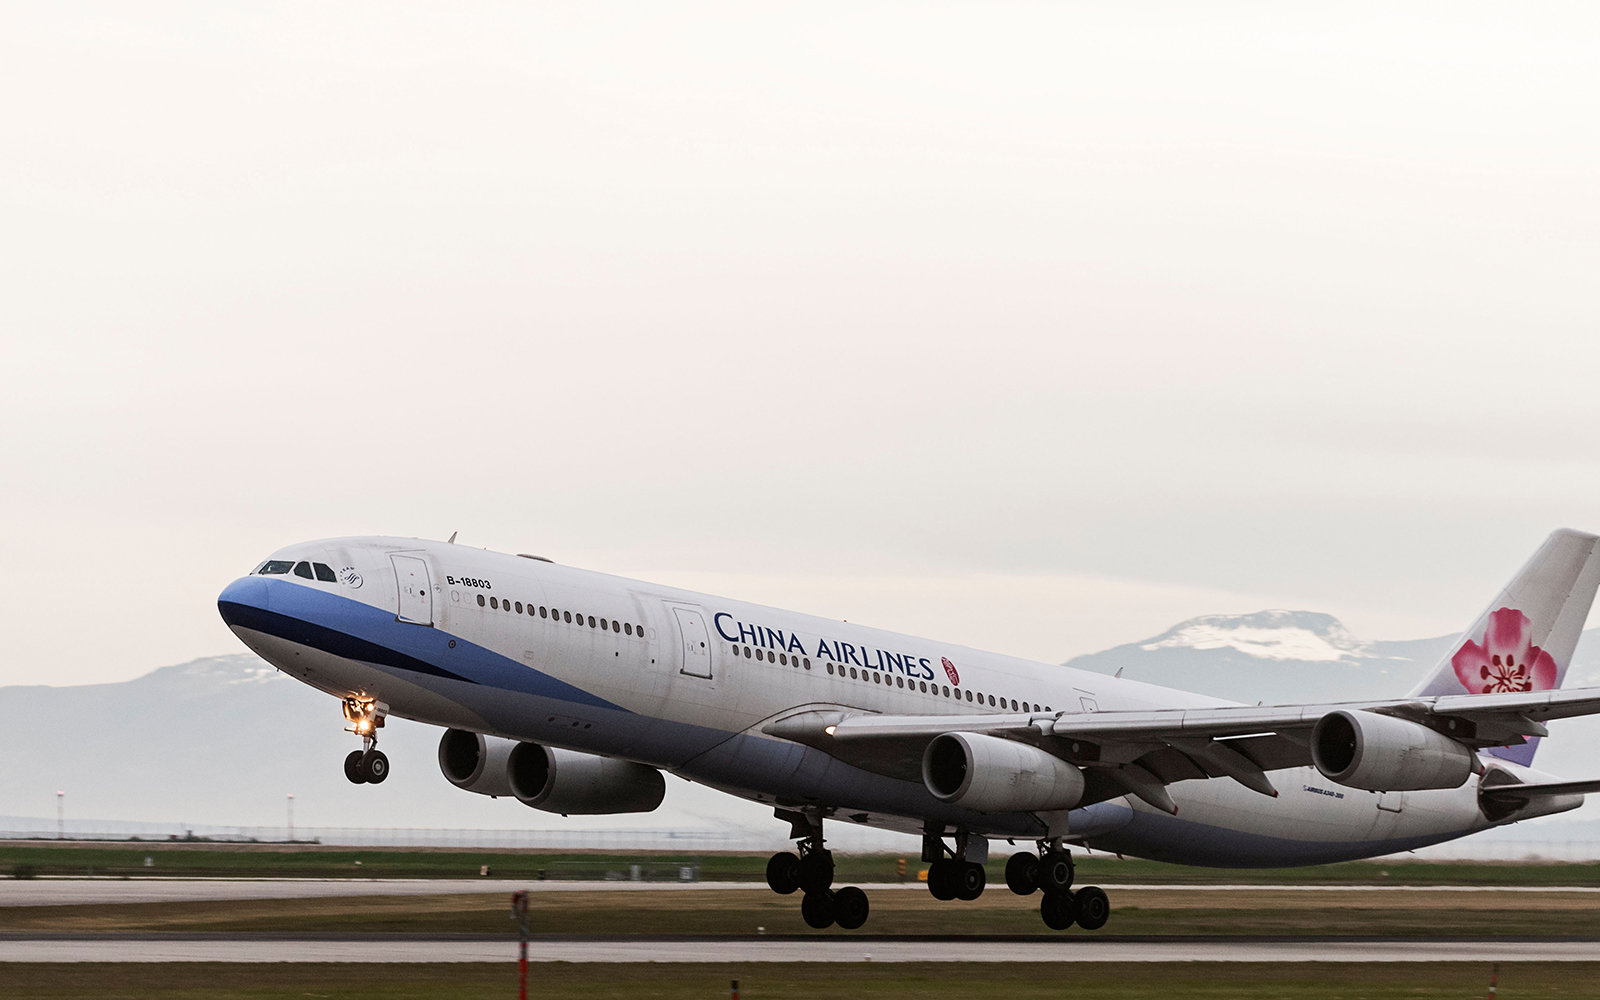 A China Airlines Airbus A340-300 (B-18803) jetliner lands at Vancouver International Airport.